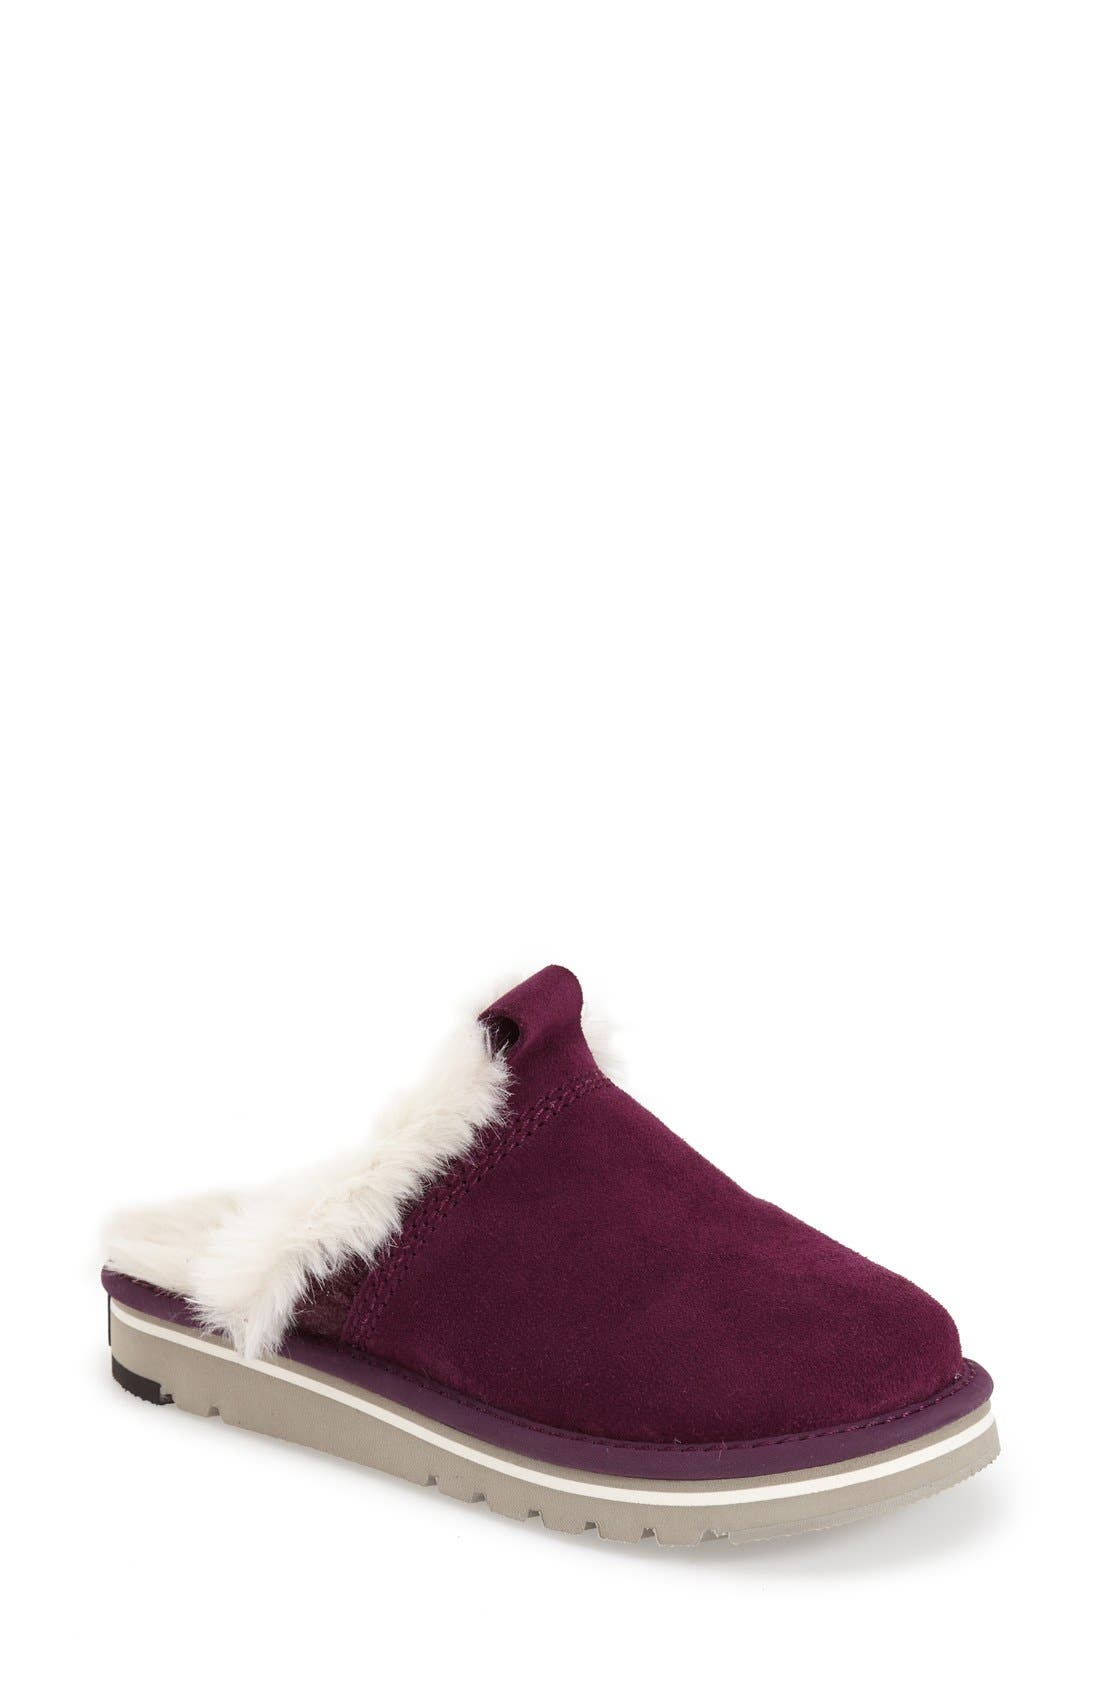 Main Image - SOREL 'The Campus™' Slipper (Women)